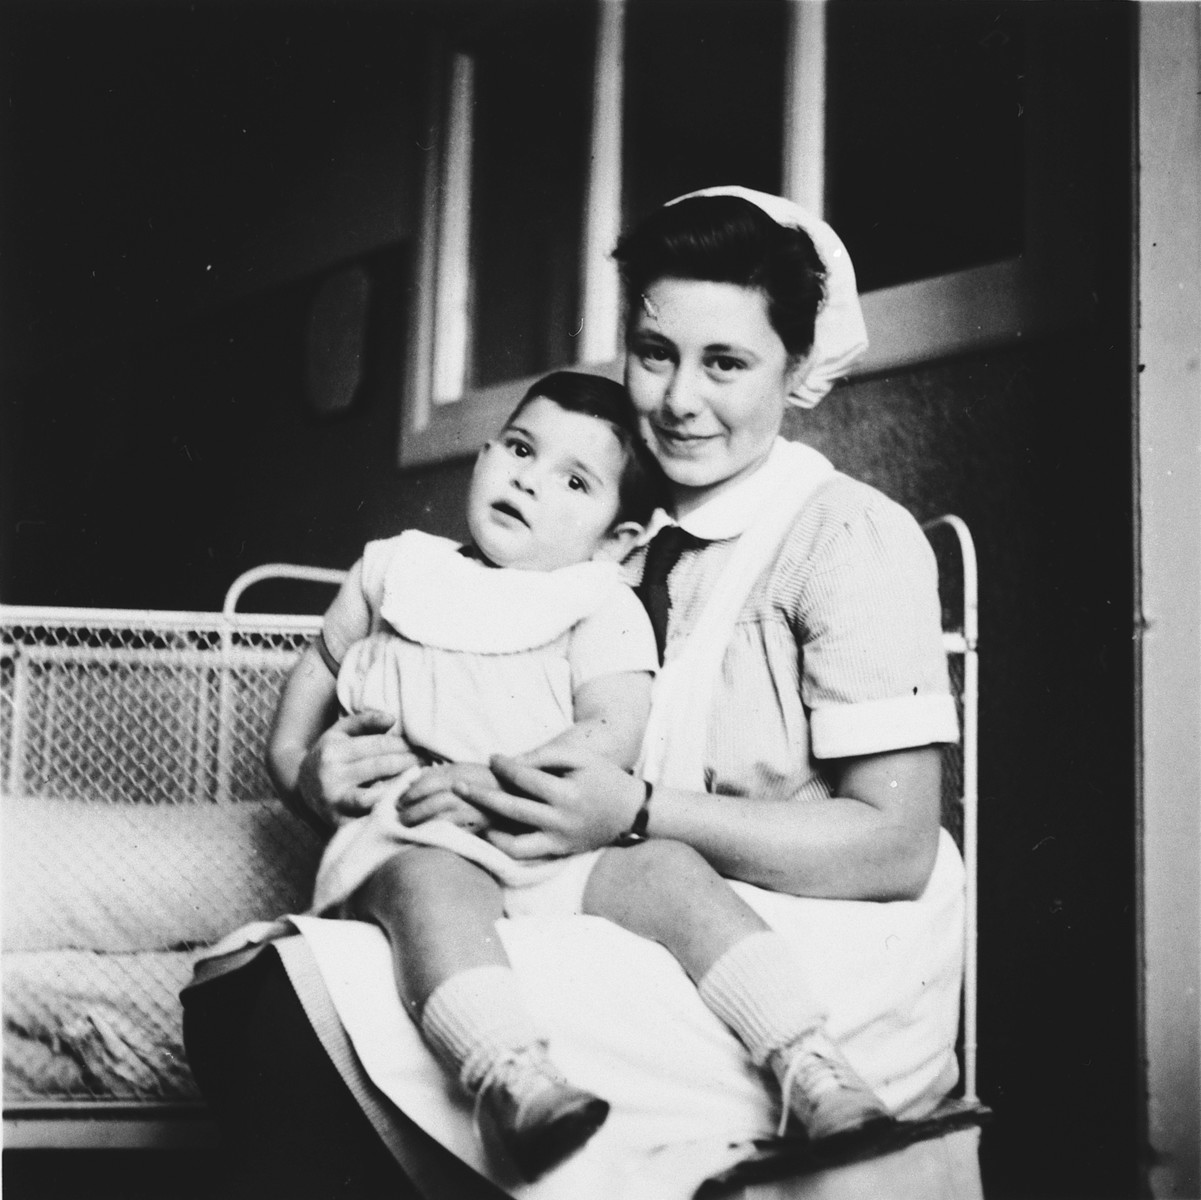 A Jewish refugee youth cares for a young child while training to become a pediatric nurse in Switzerland.  Pictured is Ilse Wulff (right).